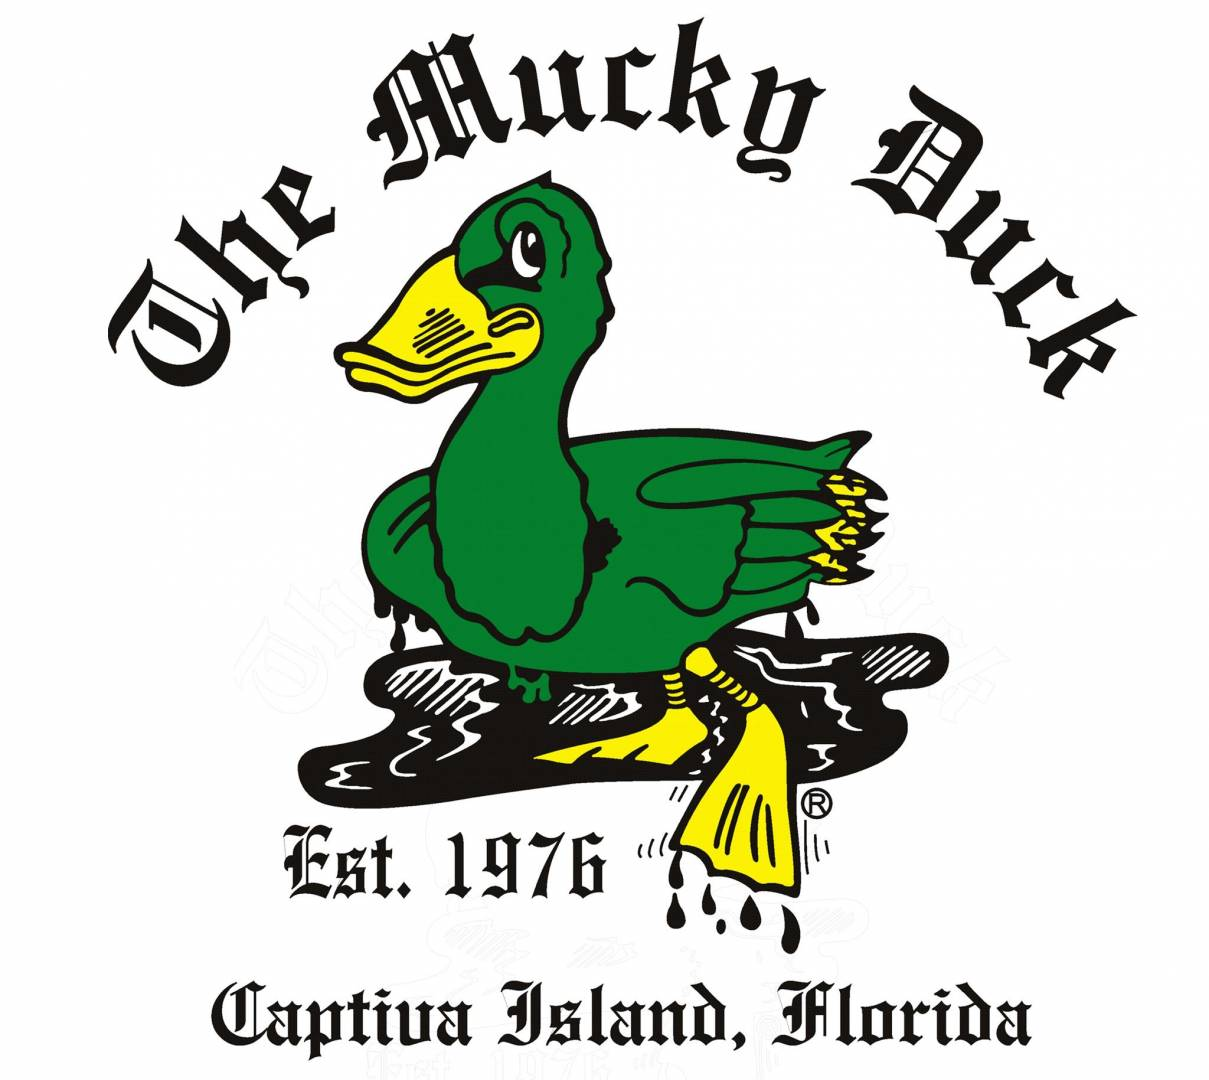 Mucky Duck Repo: How to Install MD Wizard & Repository (NEW SOURCE)